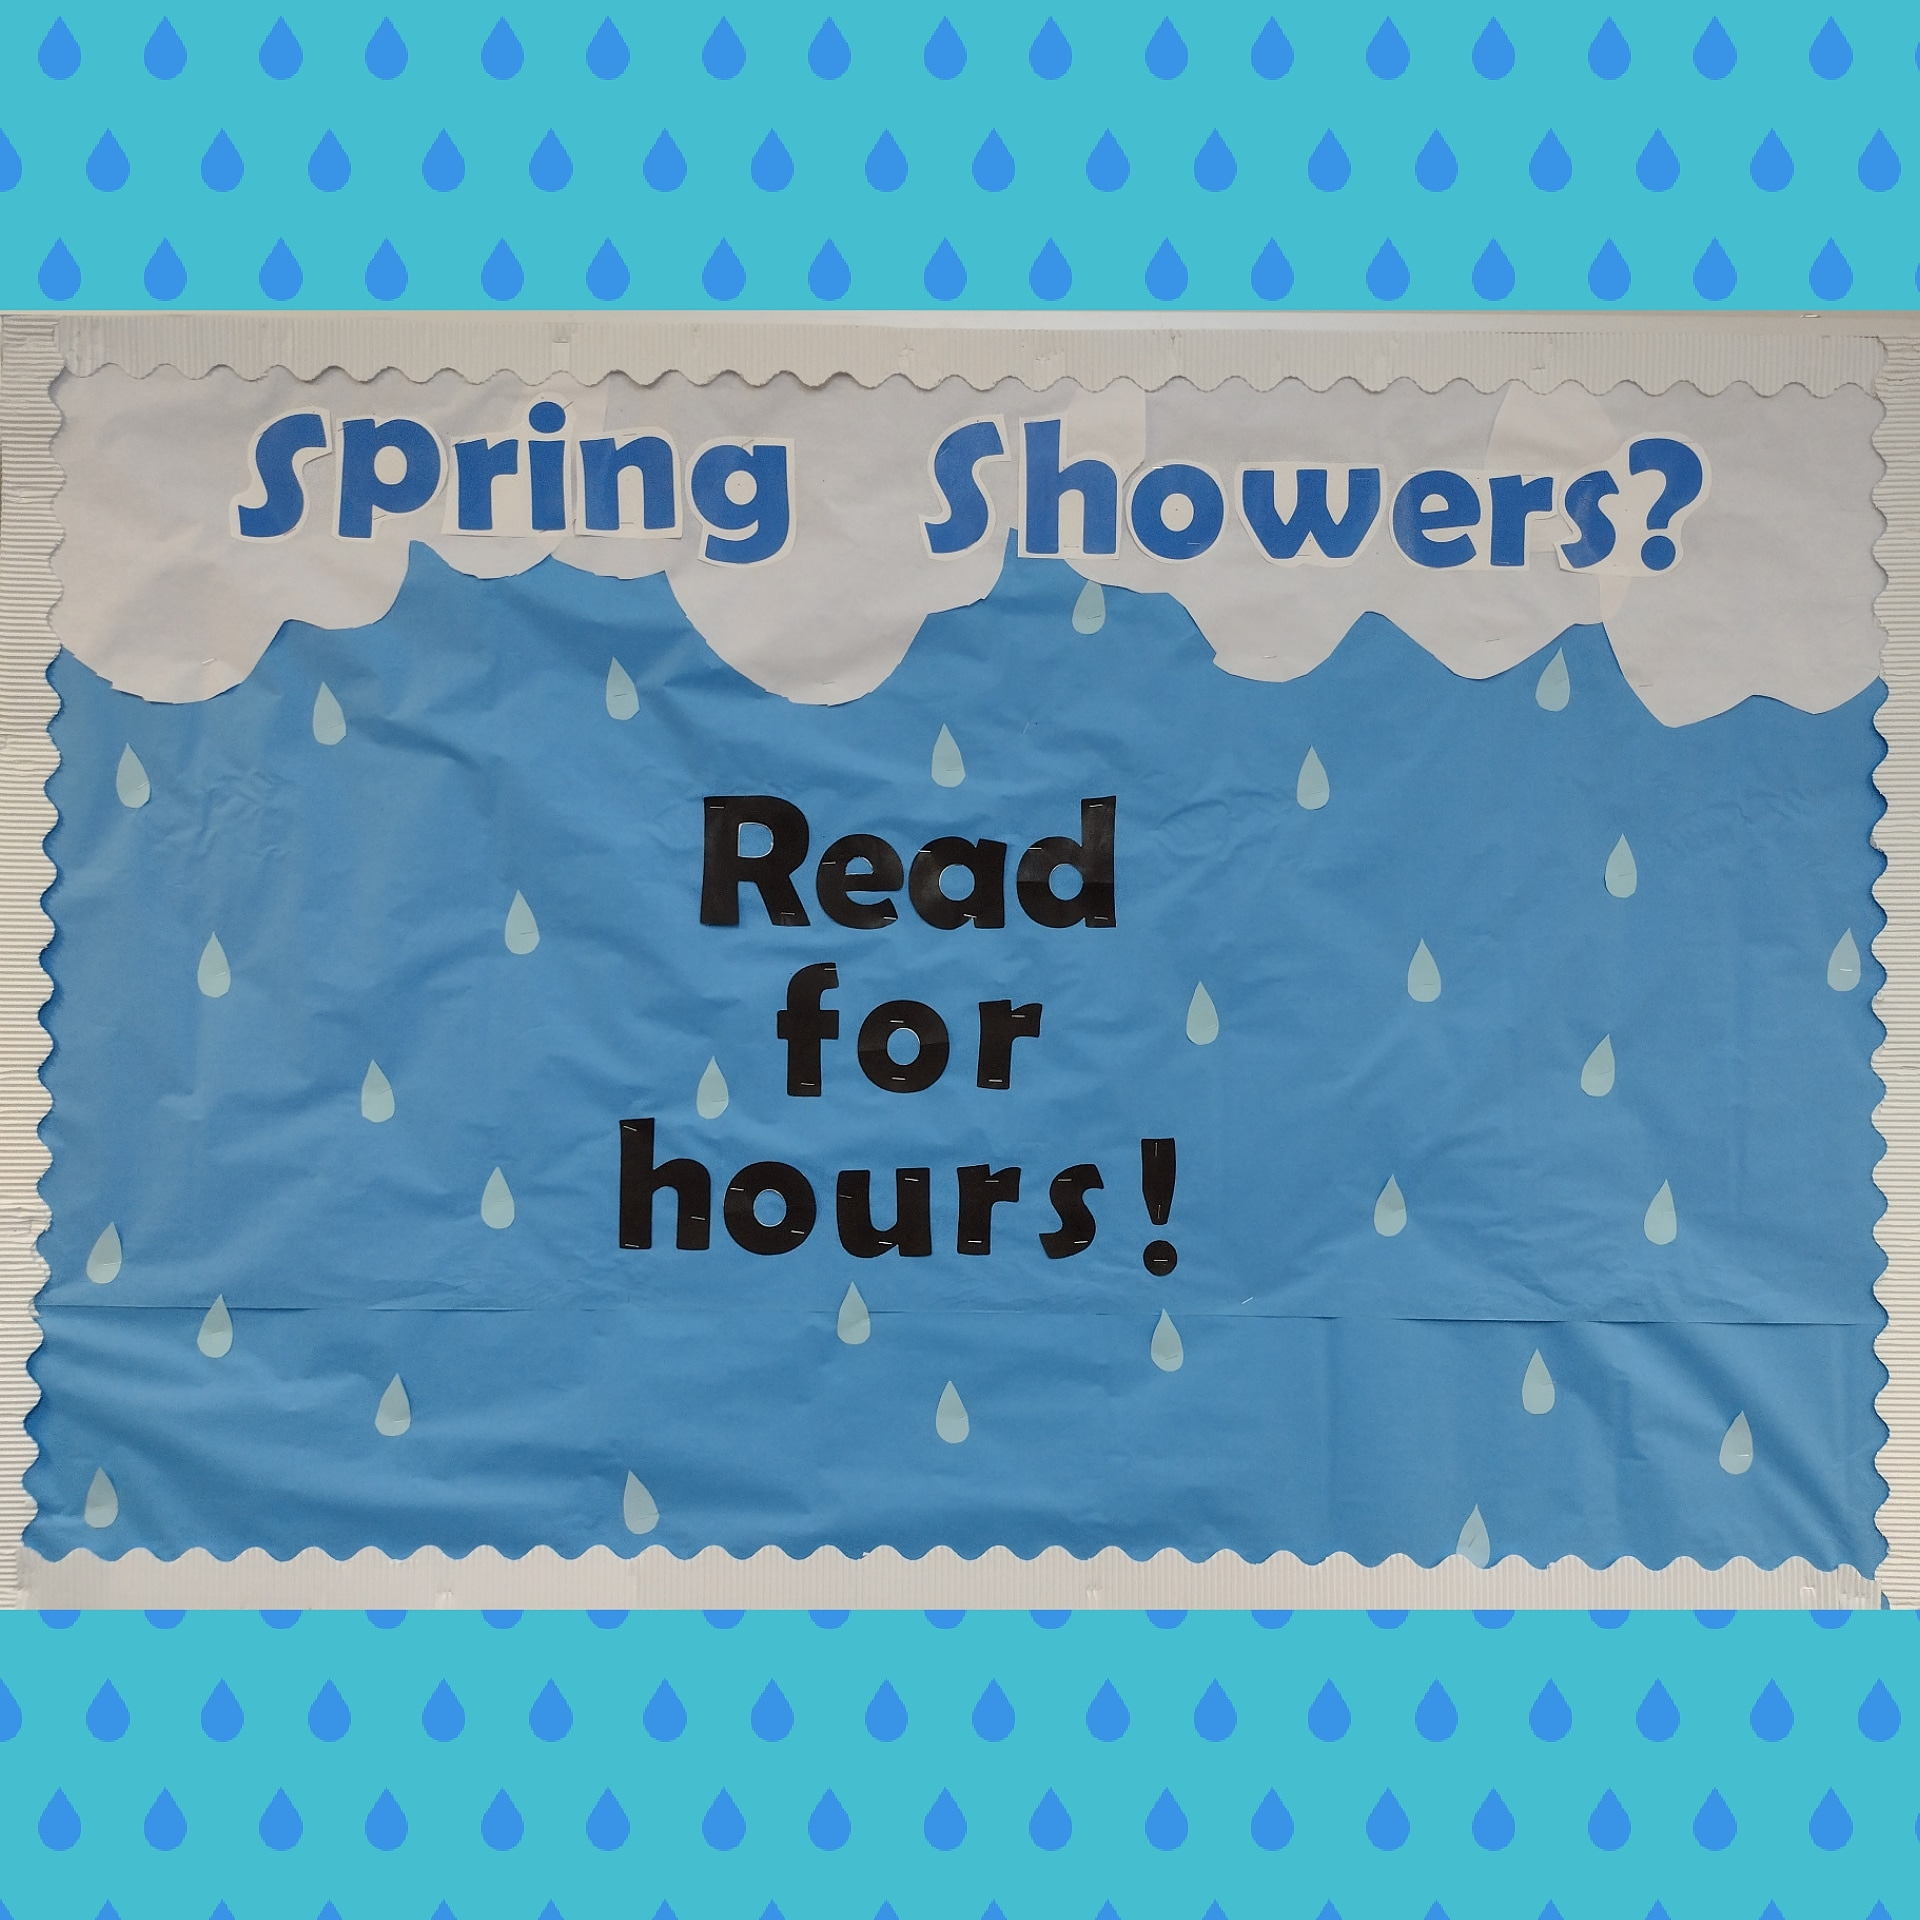 Spring Showers? Read for Hours! Spring 2021 board